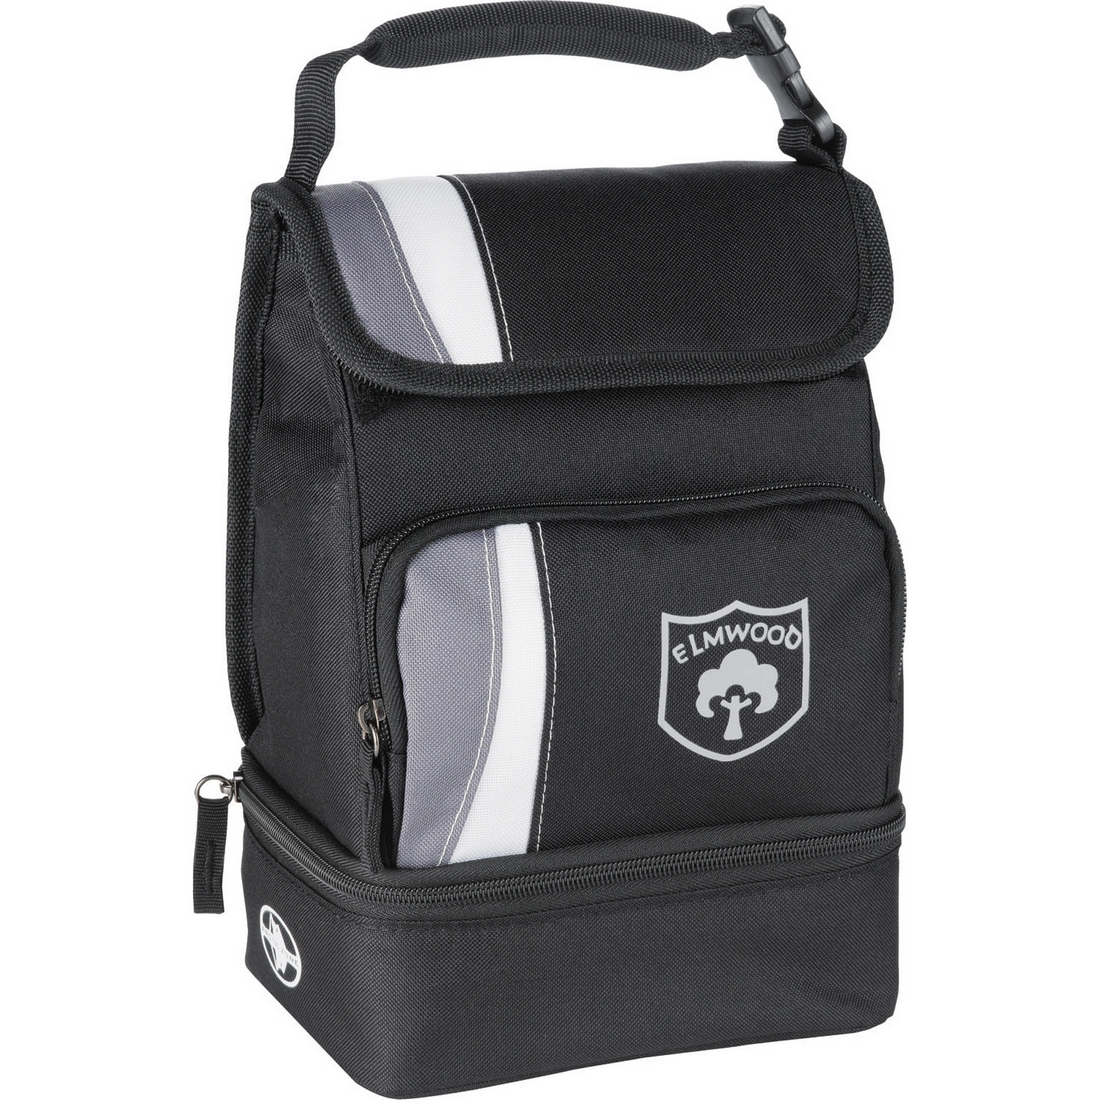 Dual Compartment Zippered Lunch Cooler